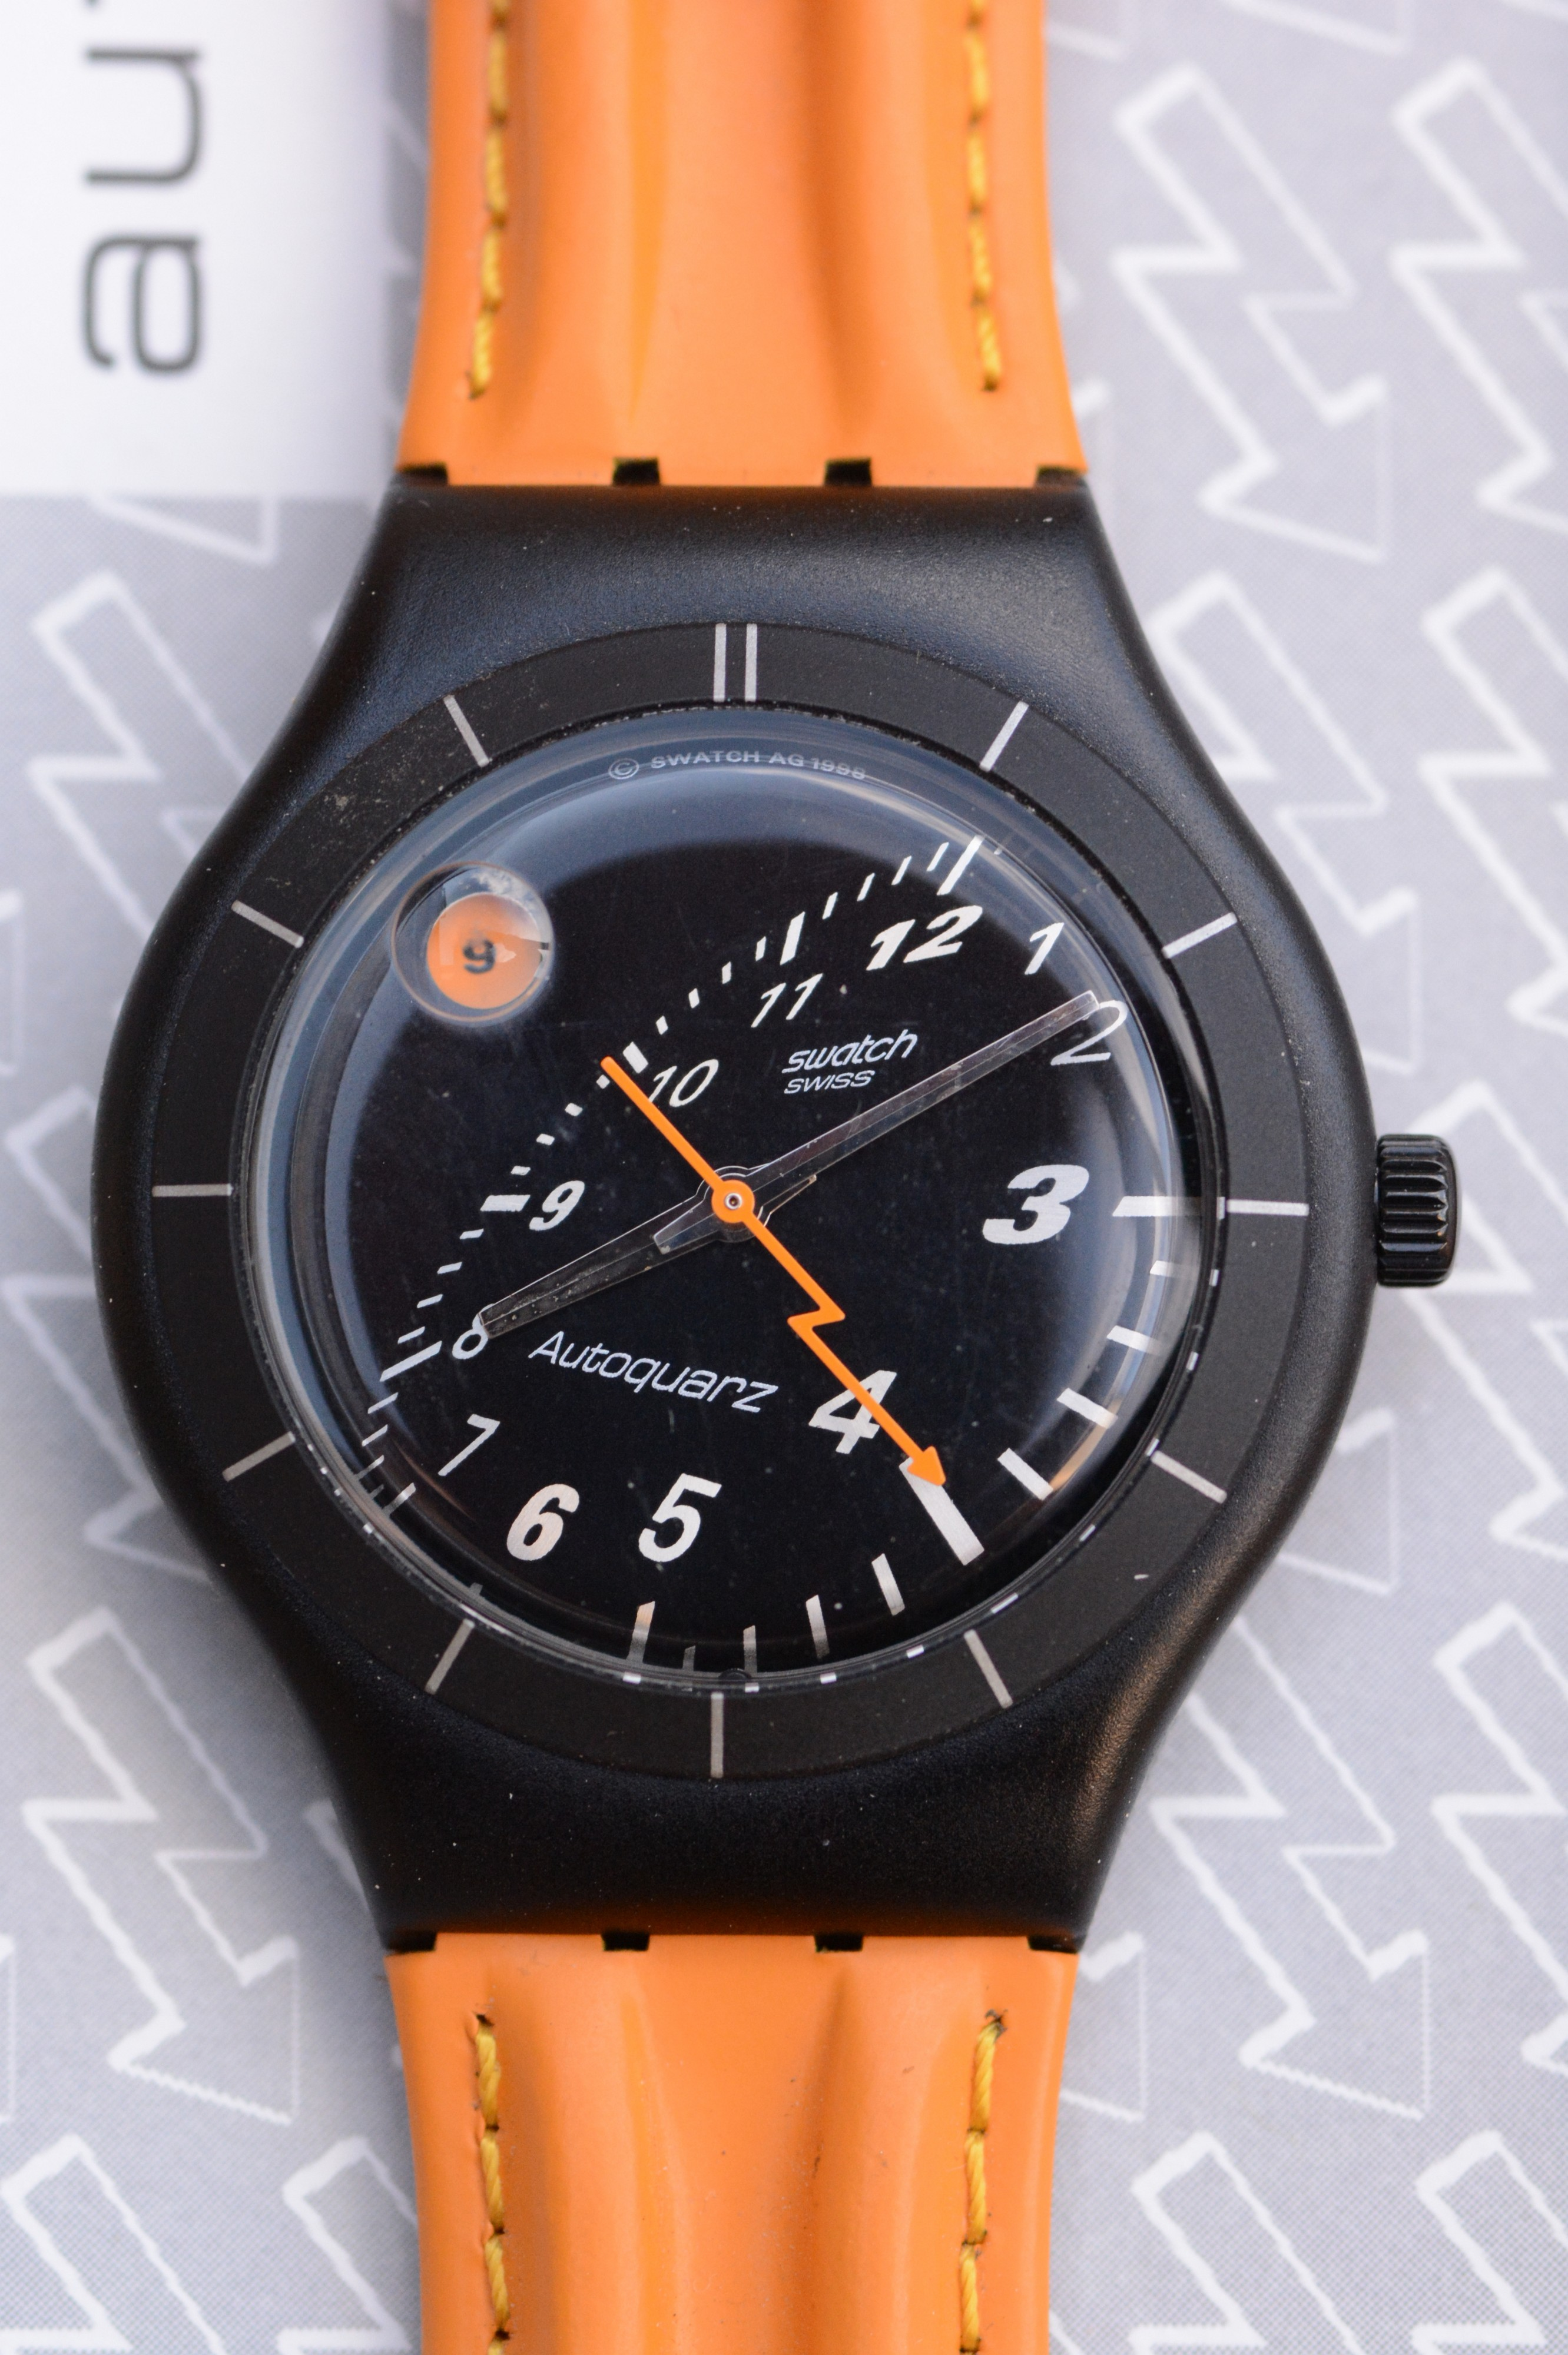 Swatch Swiss Autoquarz, 1998